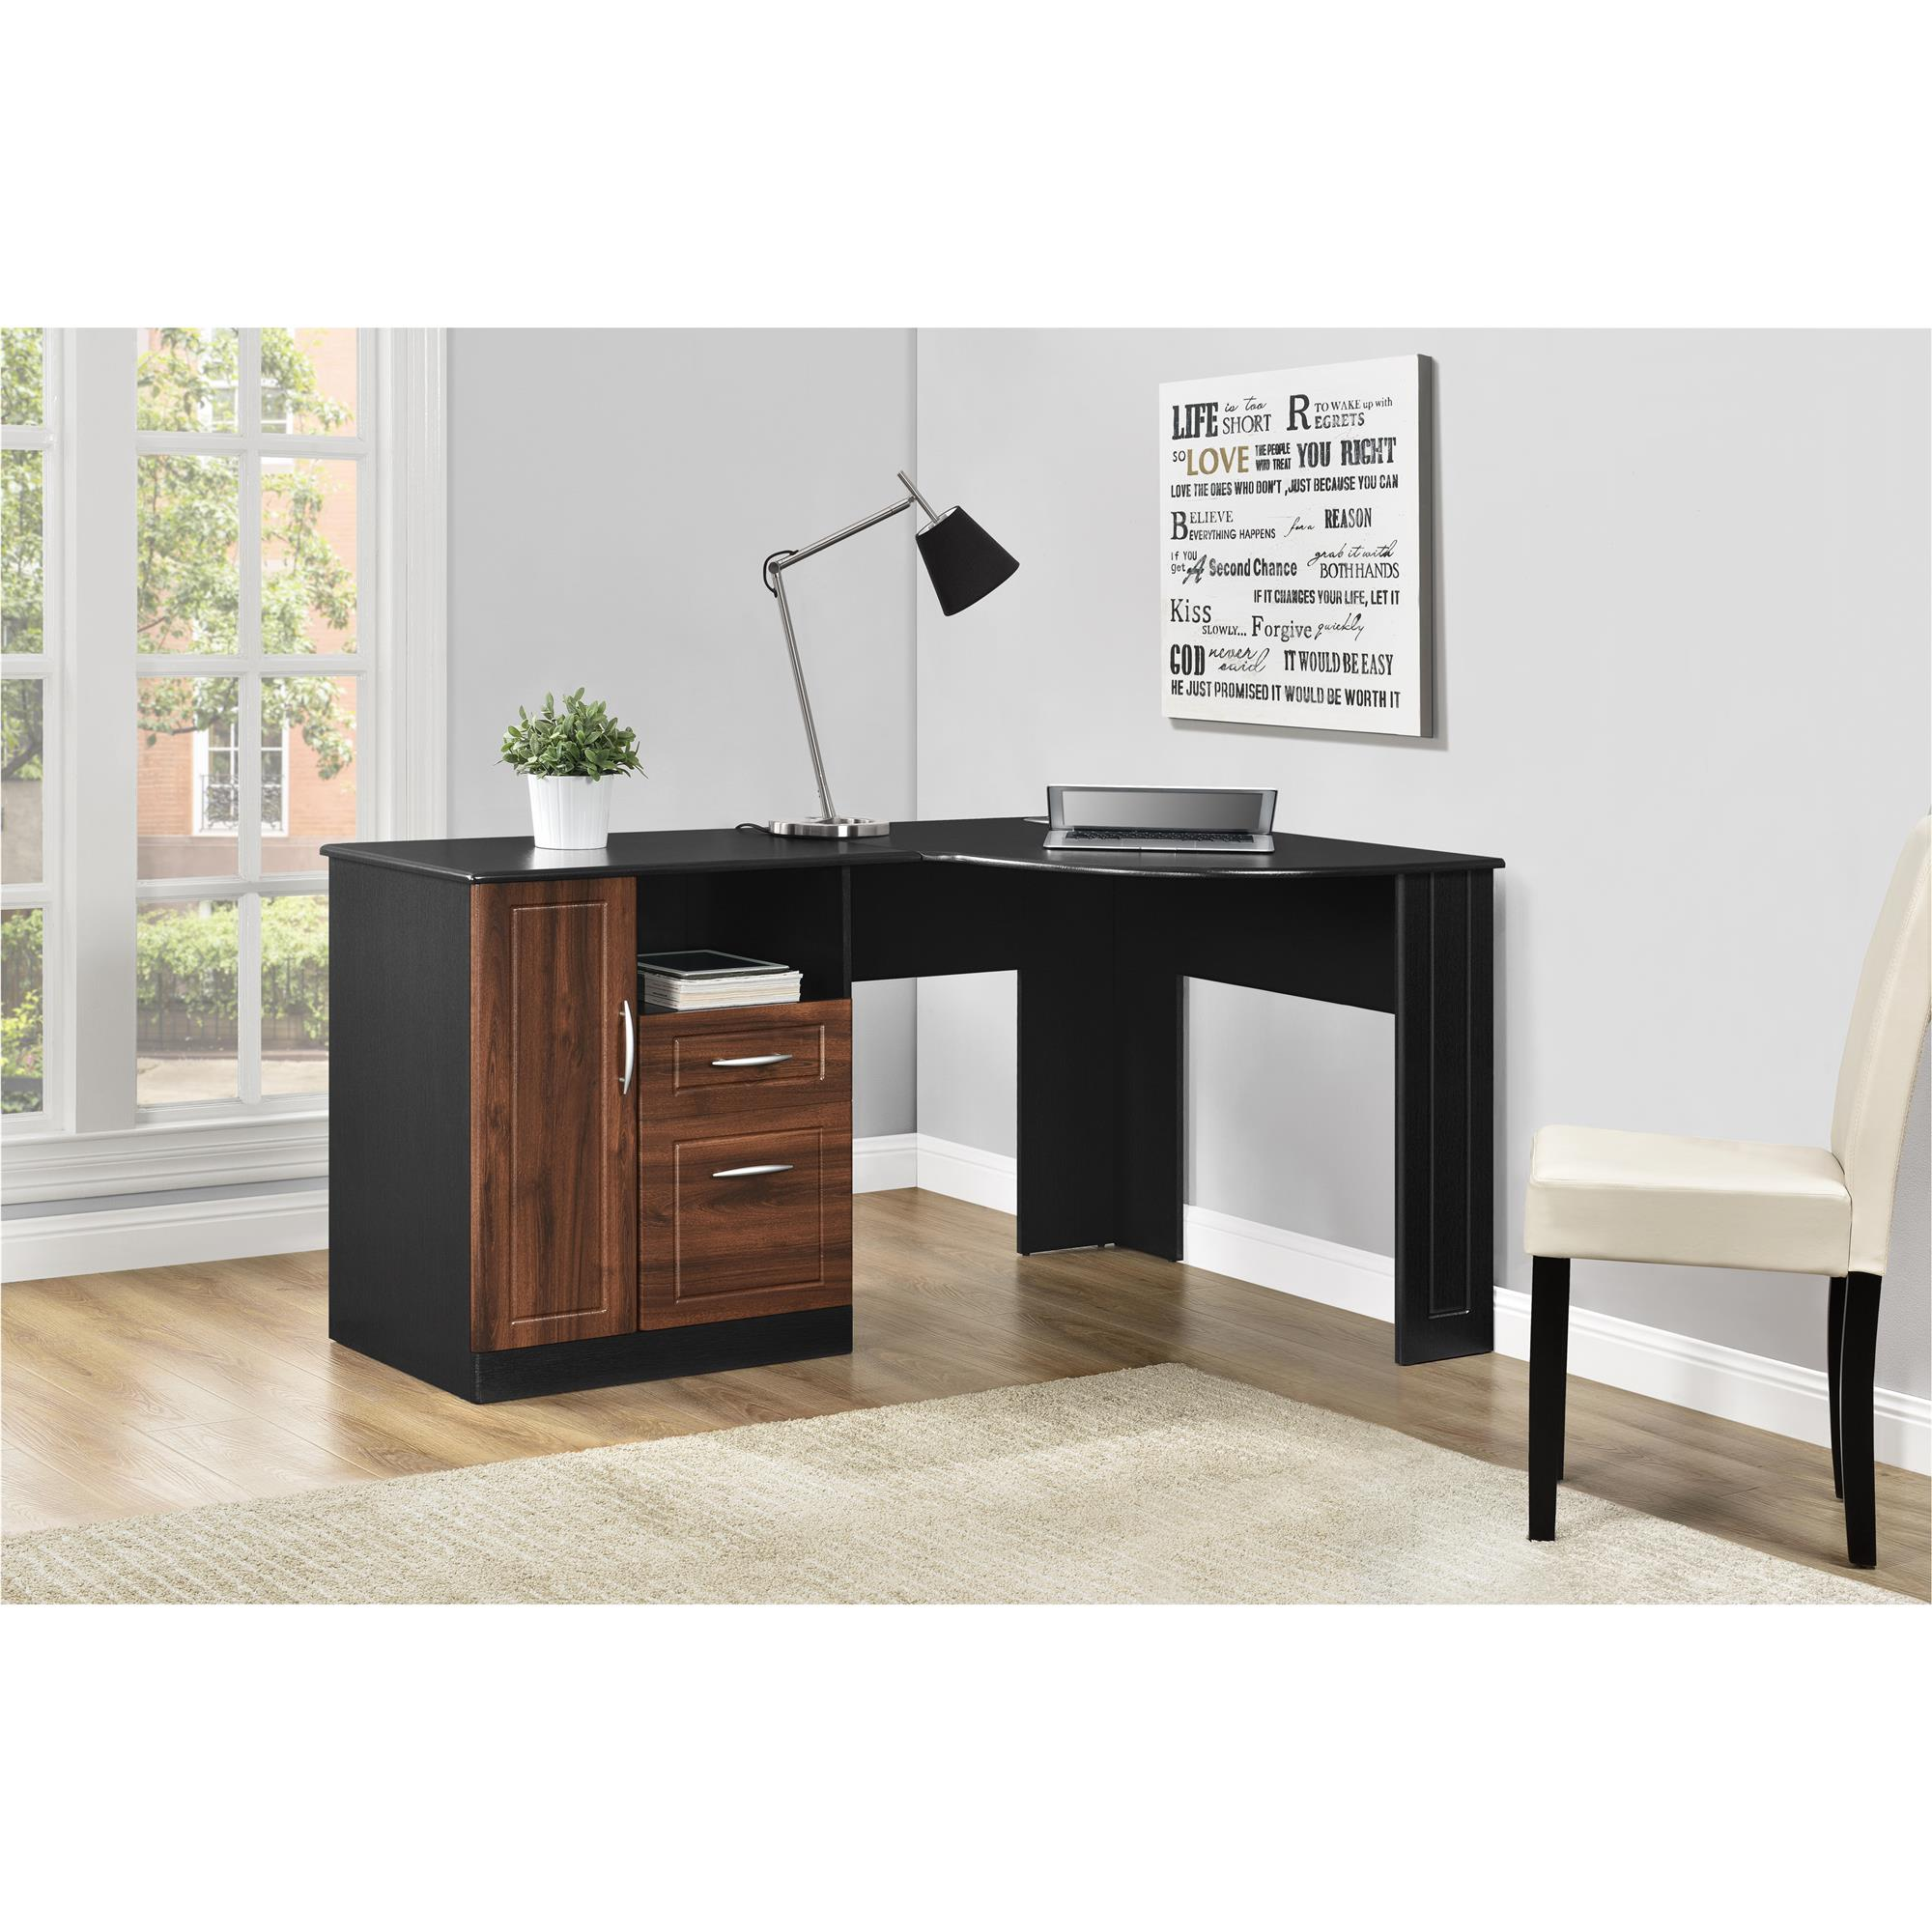 ameriwood furniture avalon corner desk black source cherry accent table little bedside dark wood end tables oriental vase lamp modern miami outdoor ideas backyard shade craigslist